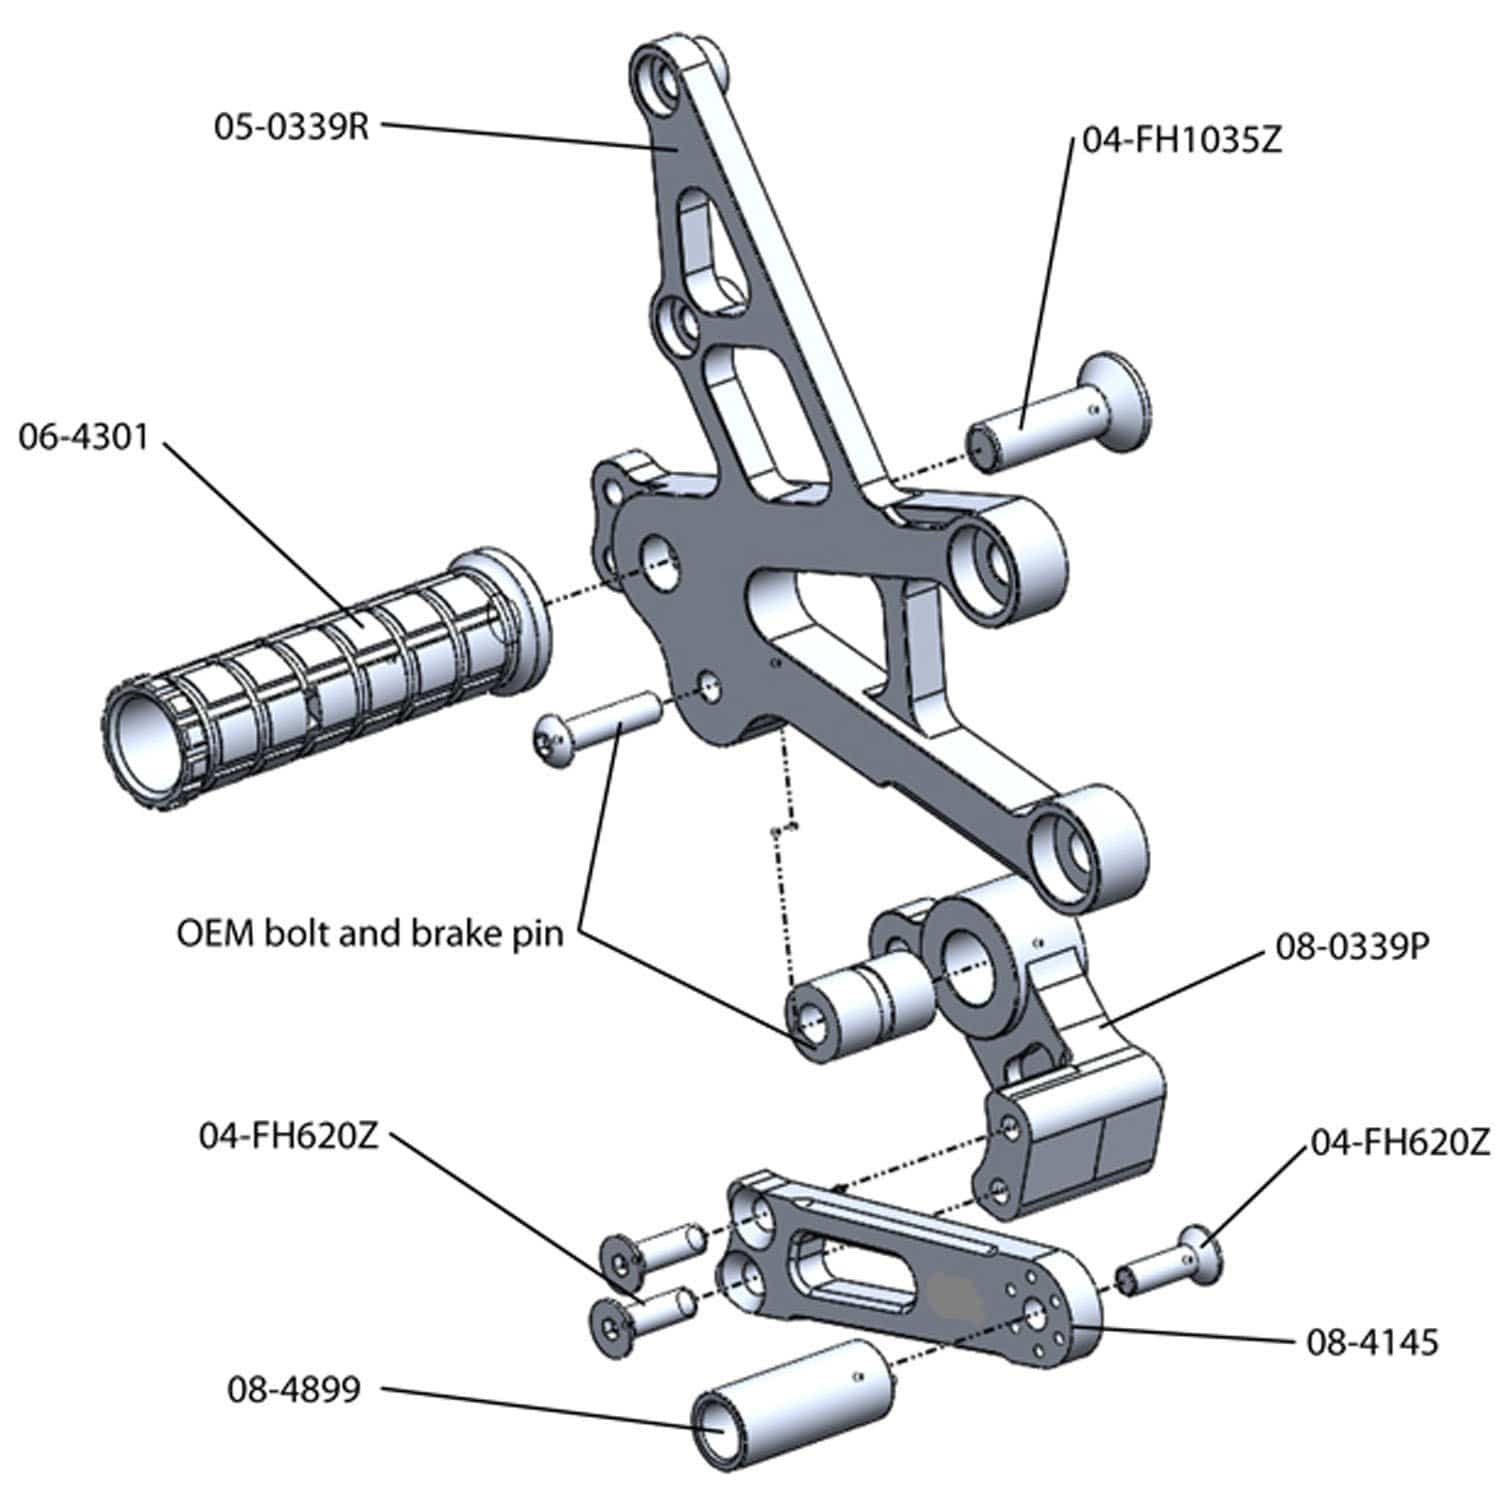 05-0339B Honda CBR1000RR Complete Rearset 2008-2016 - Woodcraft Technologies - Motorcycle Parts